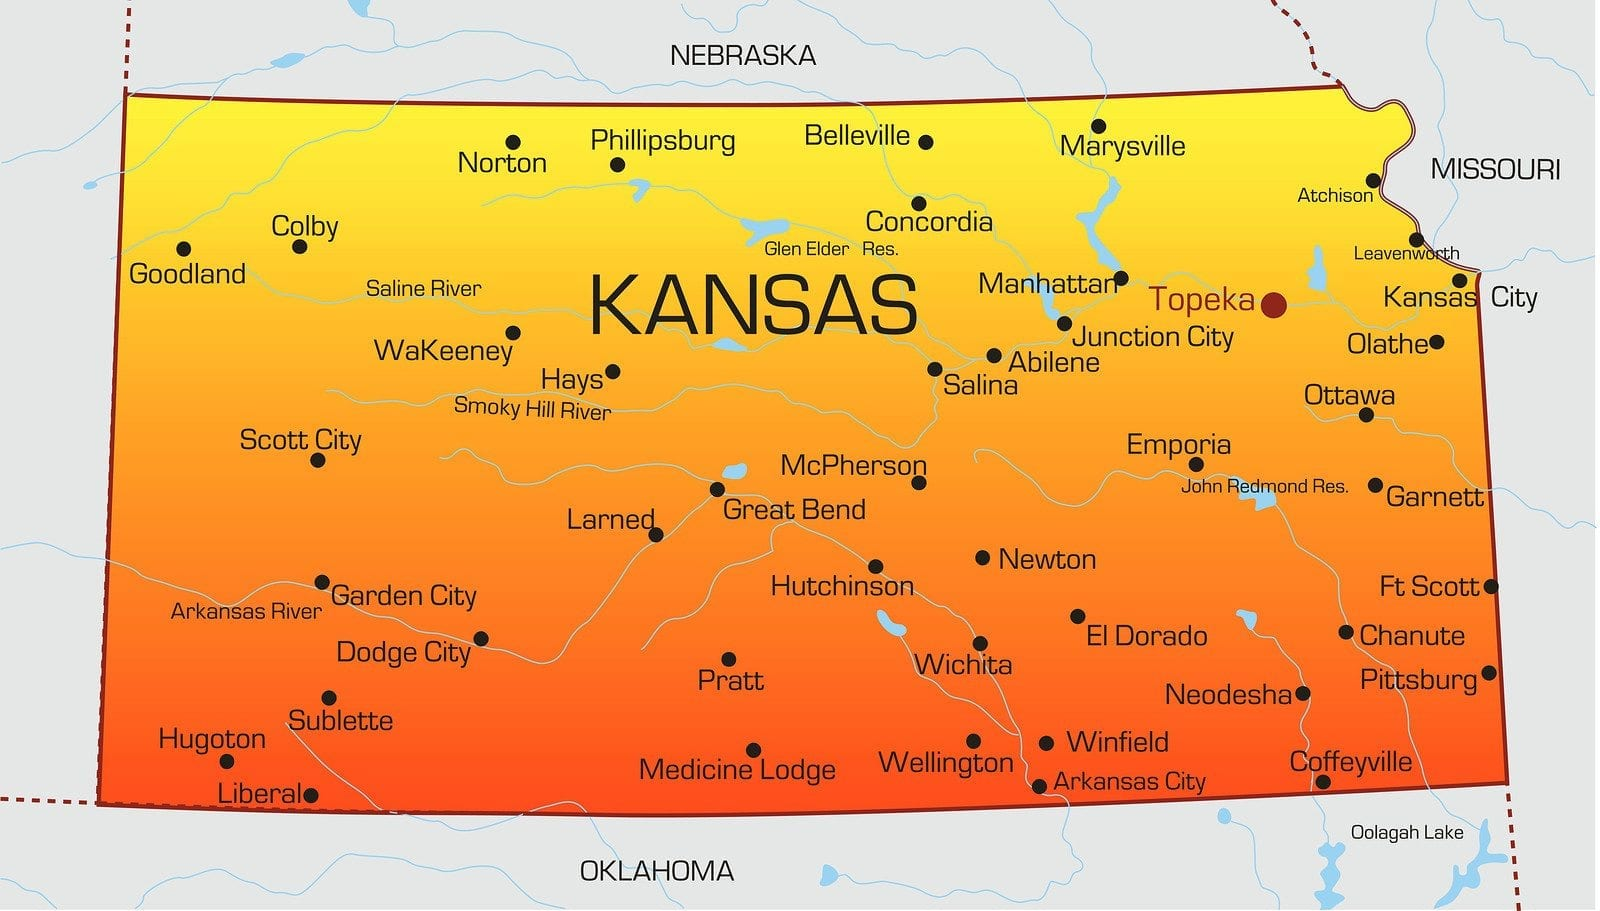 Kansas LPN Requirements and Training Programs